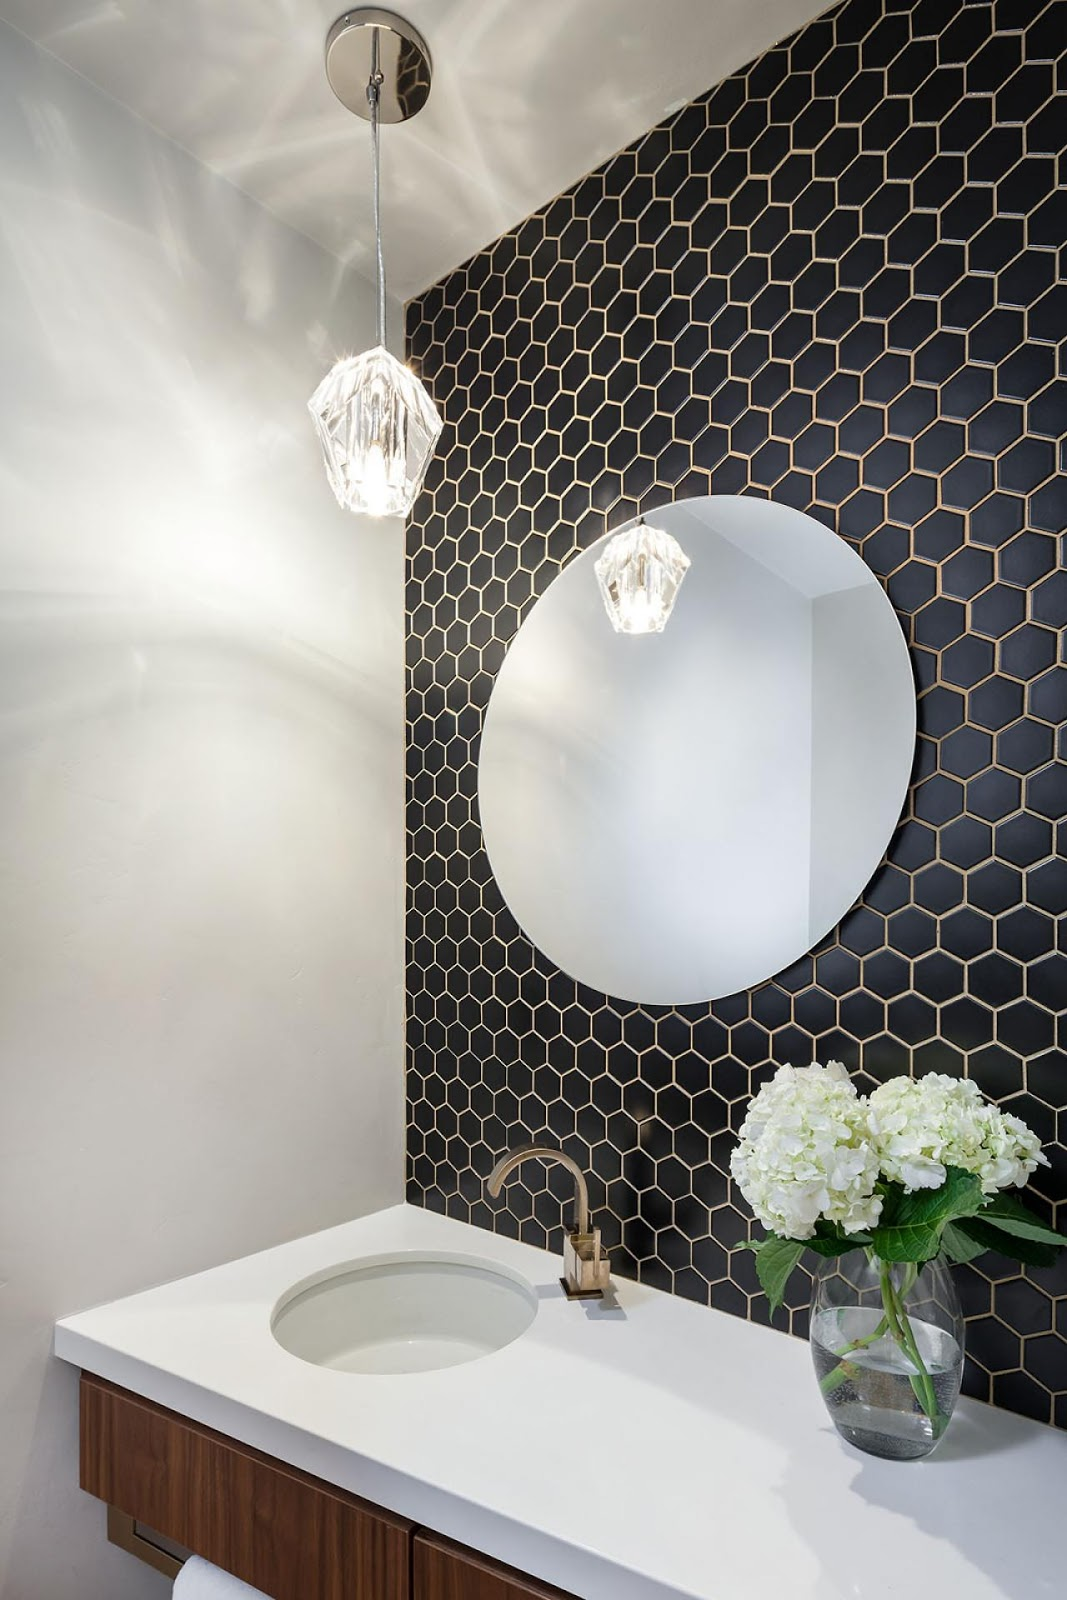 Powder Room with Hexagon Tile Wall